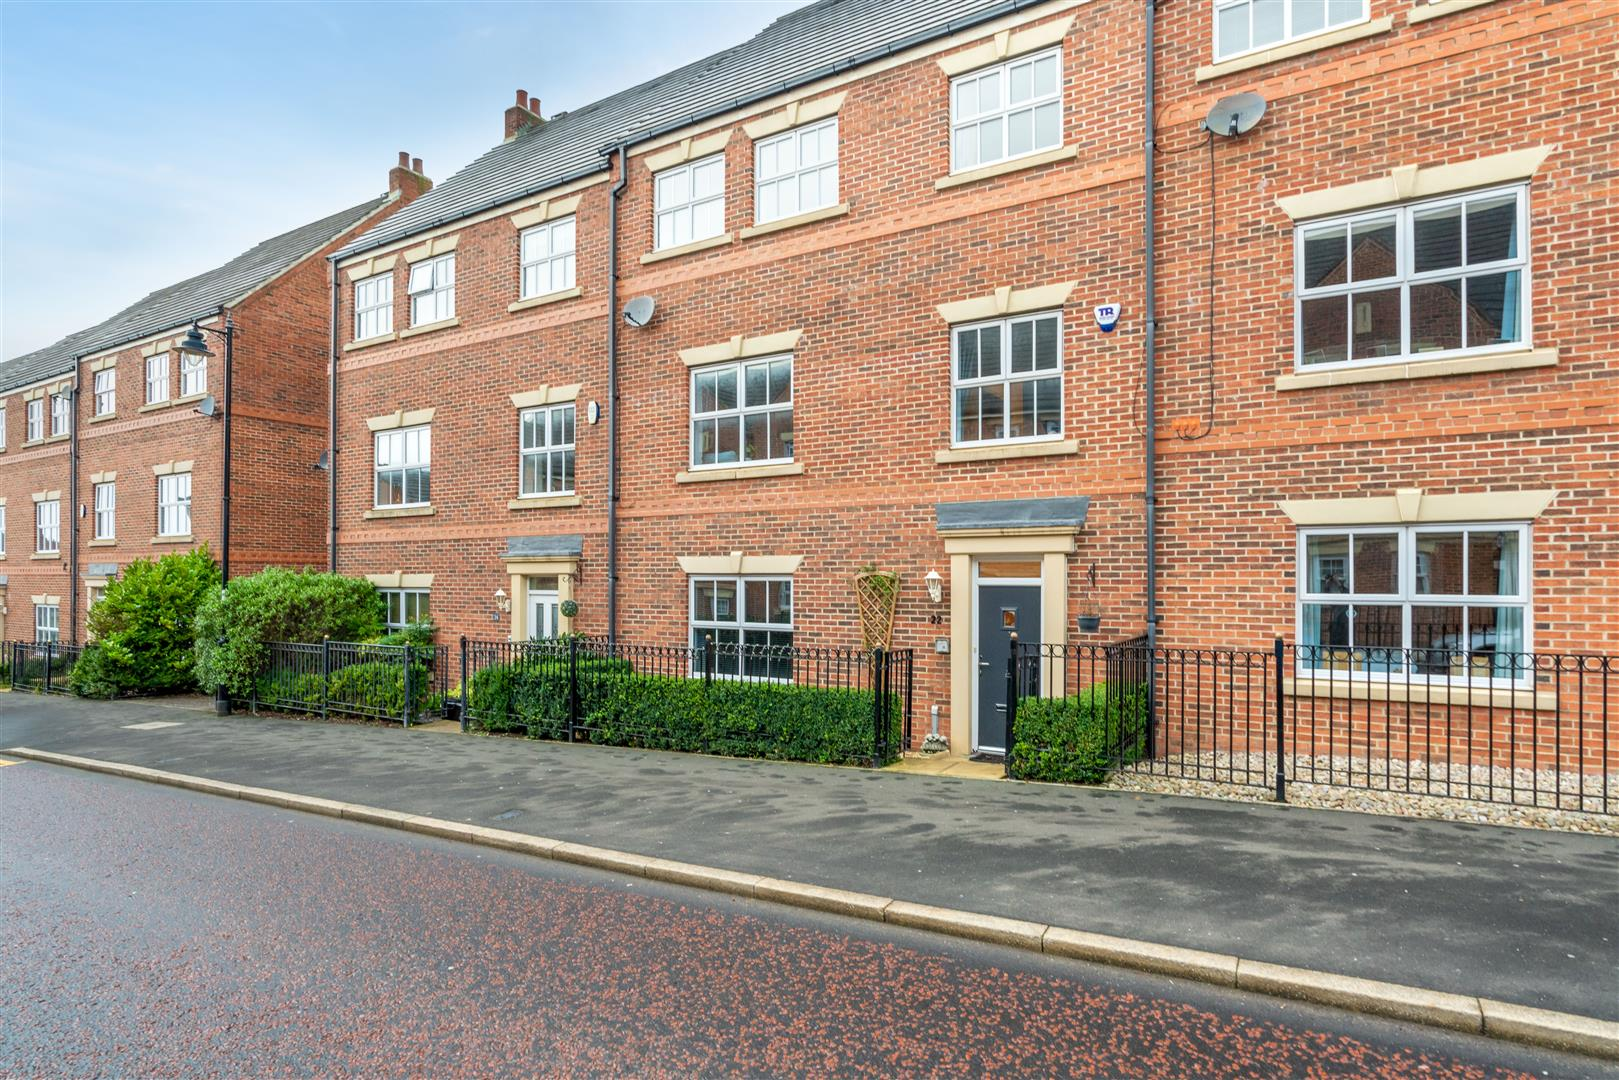 5 bed terraced house for sale in Newcastle Upon Tyne, NE3 5RJ  - Property Image 1